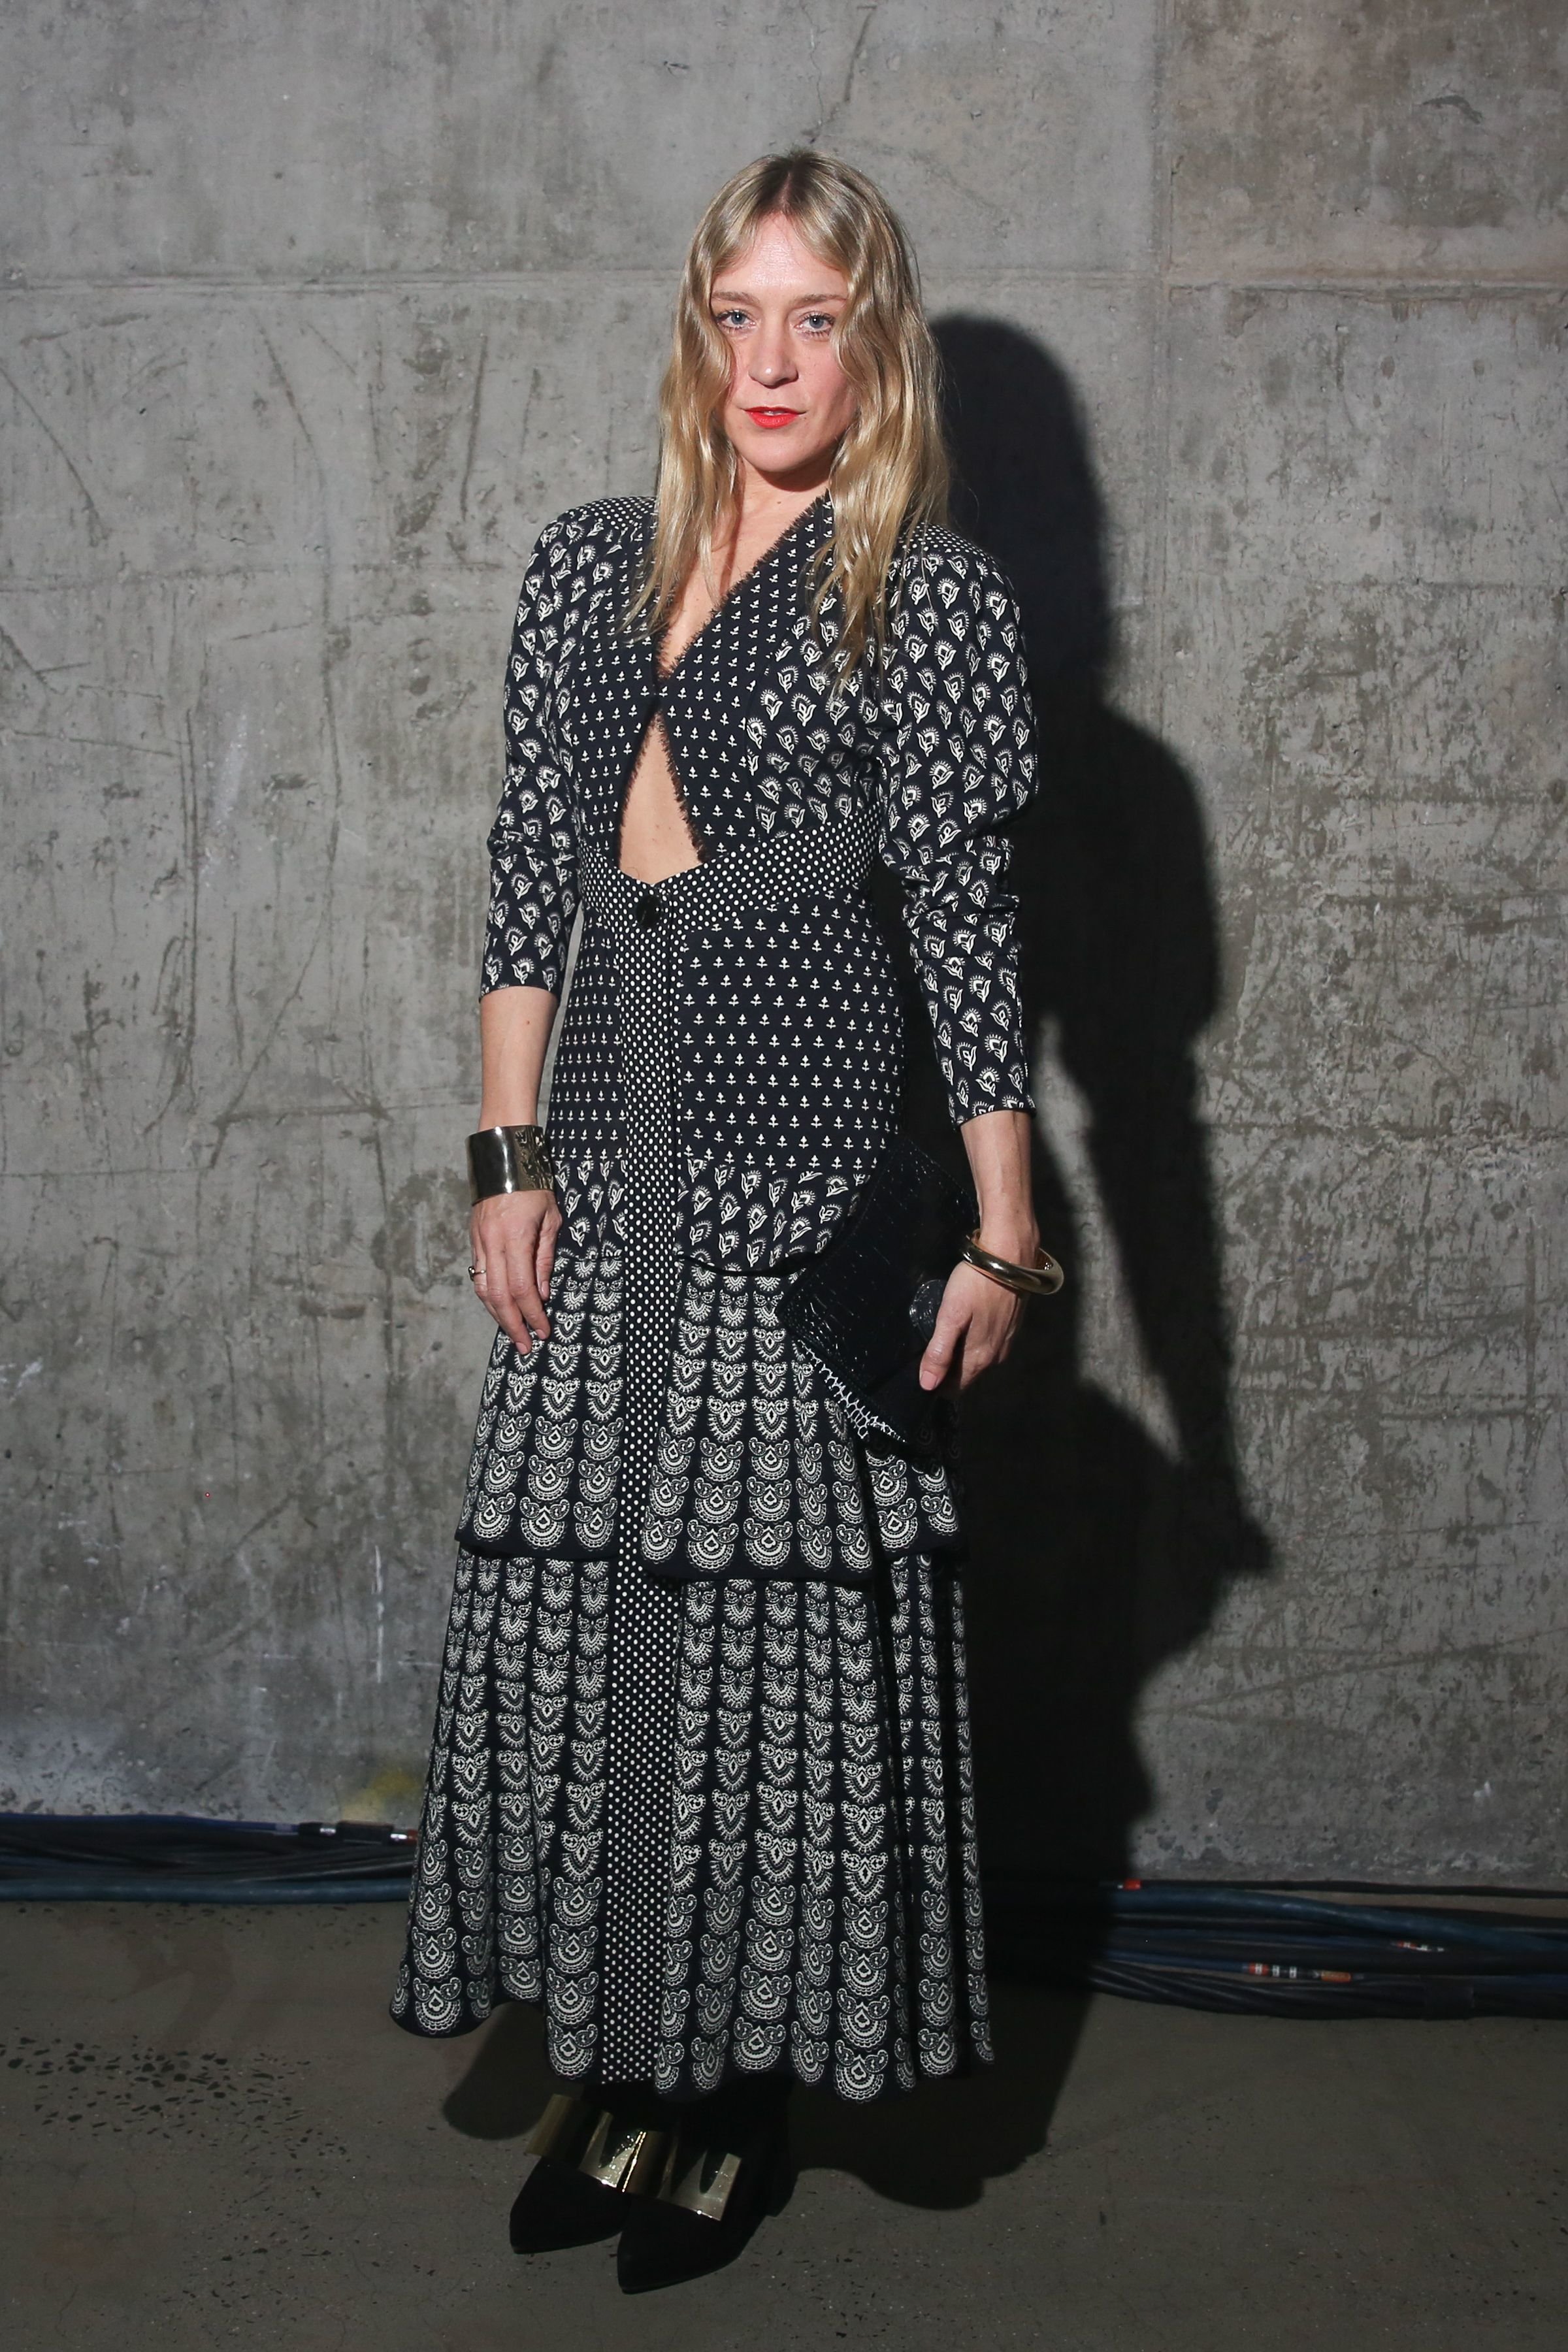 Chloe Sevigny attends the Proenza Schouler fragrance party at New York Fashion Week for Fall/Winter 2018 on Feb. 10, 2018.